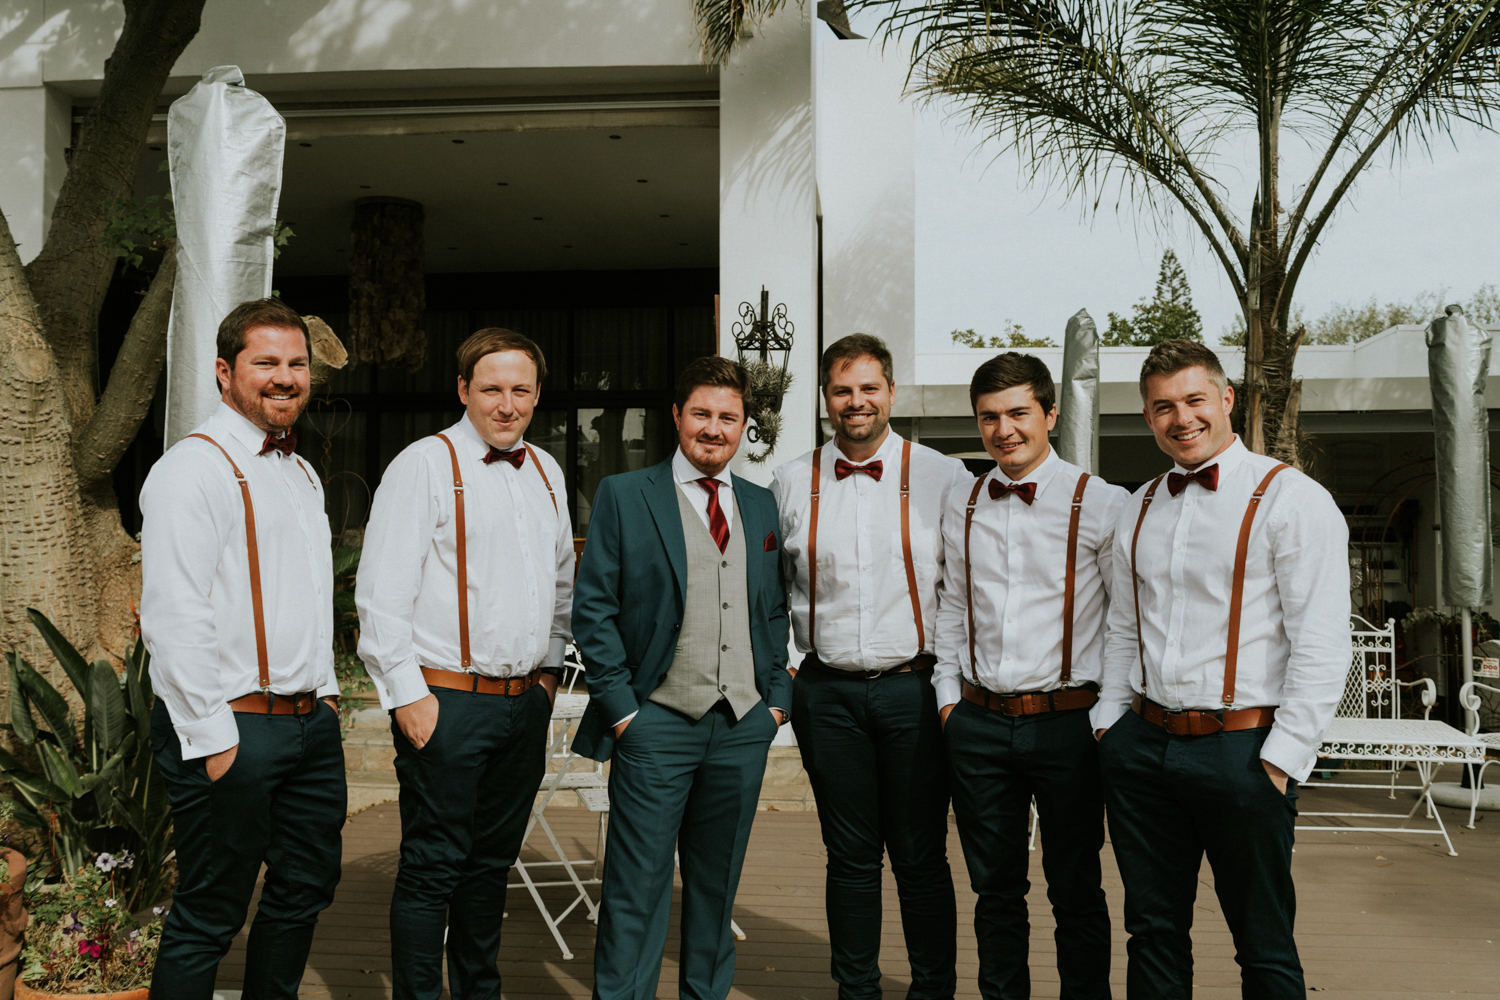 Cape Town Winter Wedding - Bianca Asher Photography-32.jpg